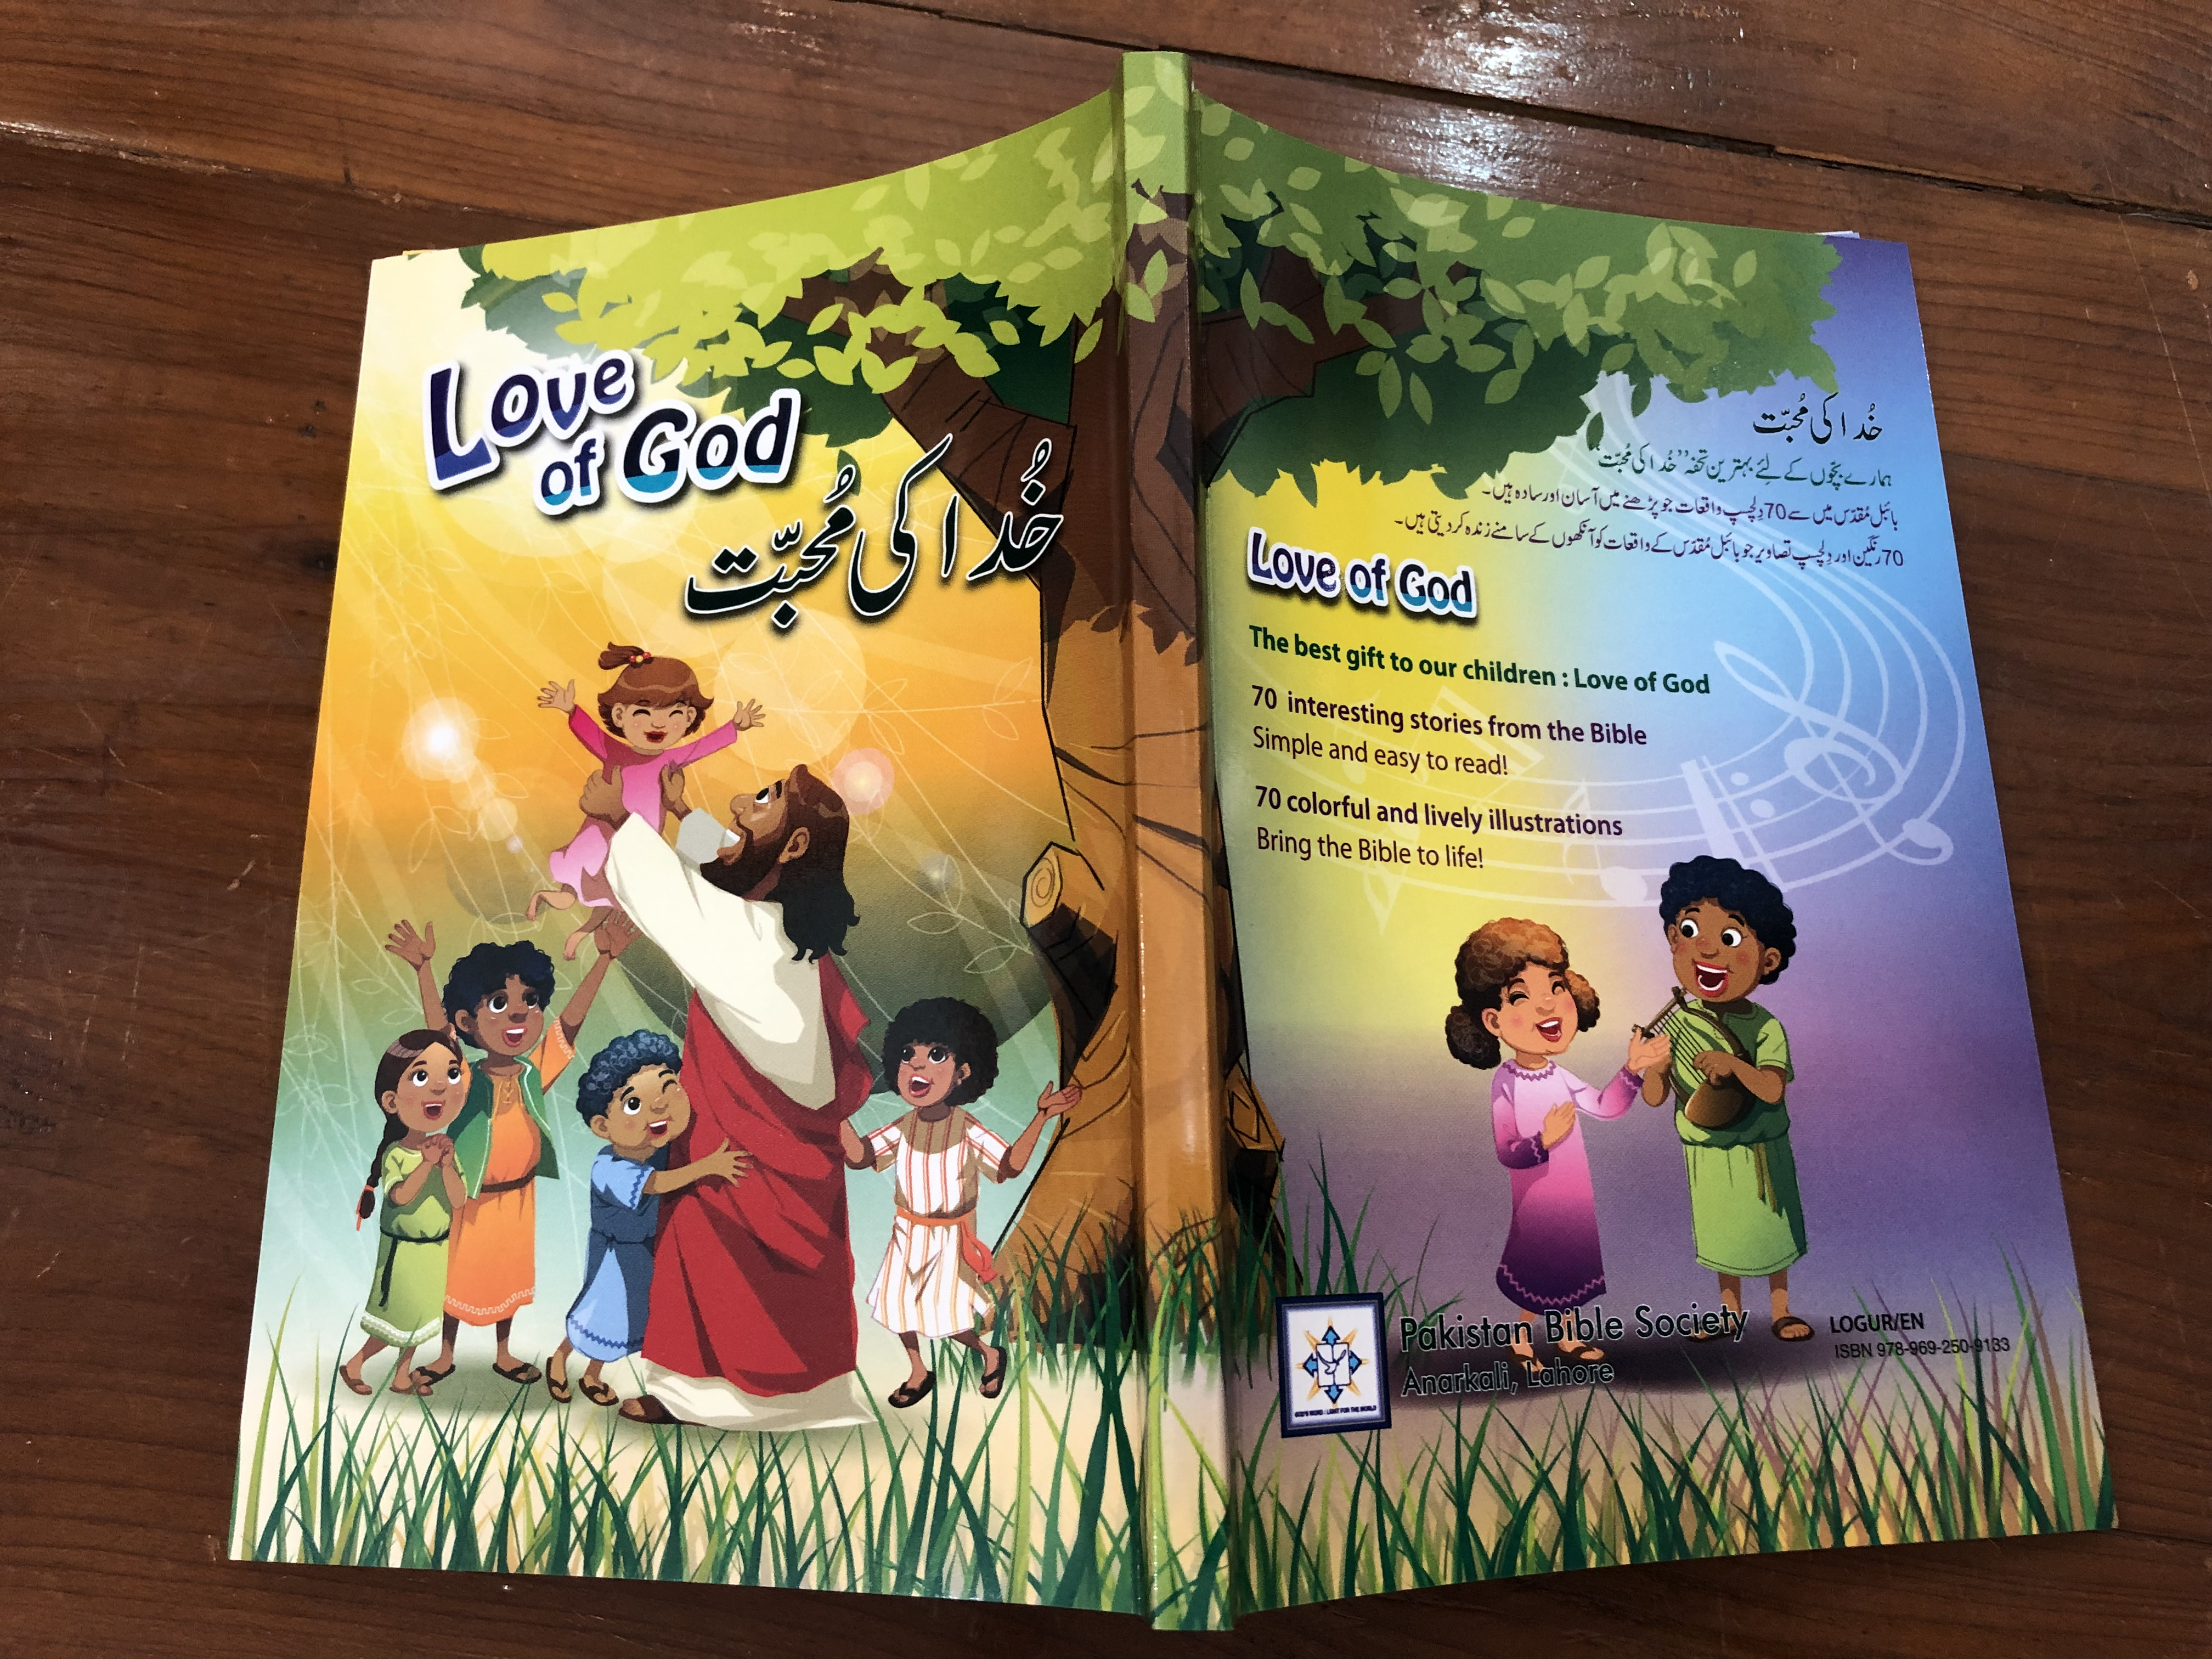 love-of-god-urdu-english-bilingual-edition-korean-bible-society-2018-paperback-70-interesting-stories-from-the-bible-the-best-gift-to-our-children-love-of-god-14-.jpg